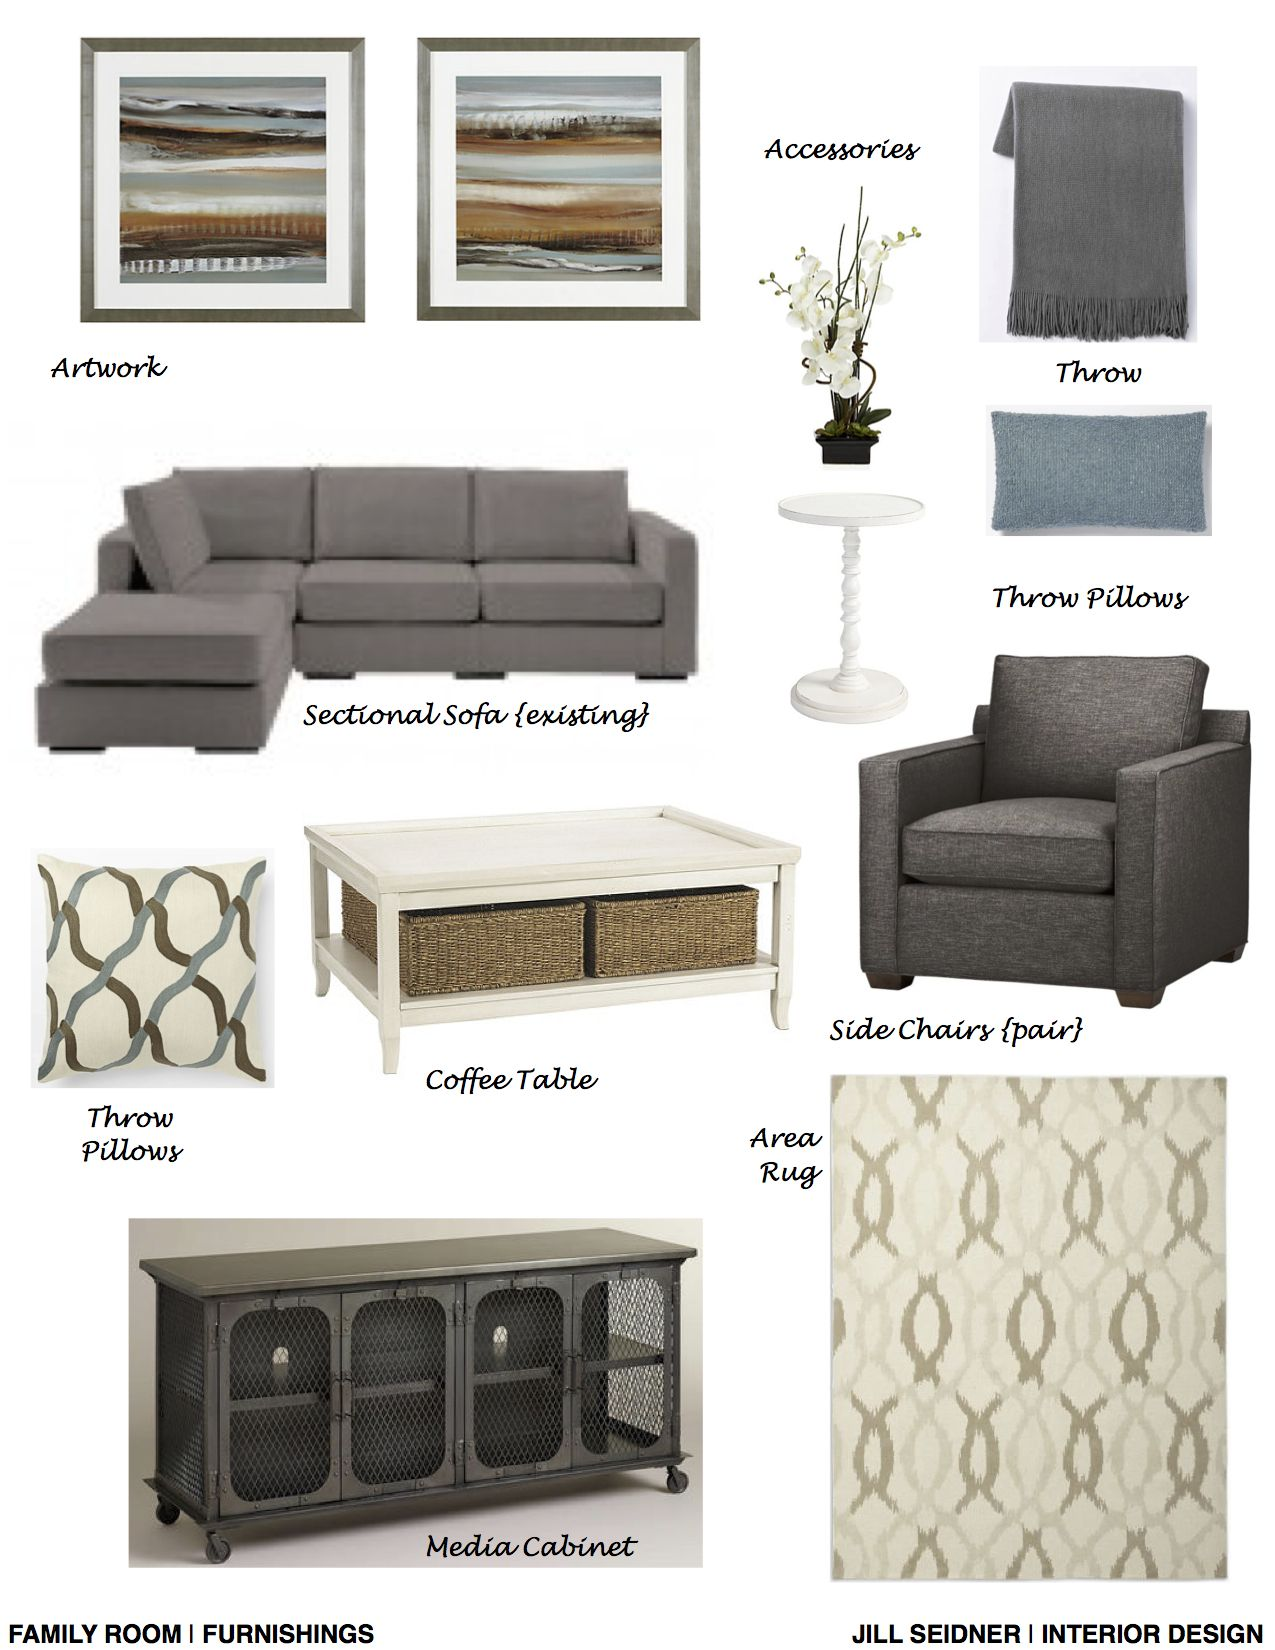 Family Room Furnishings Part - 44: Simi Valley, CA Residence Family Room Furnishings Concept Board.